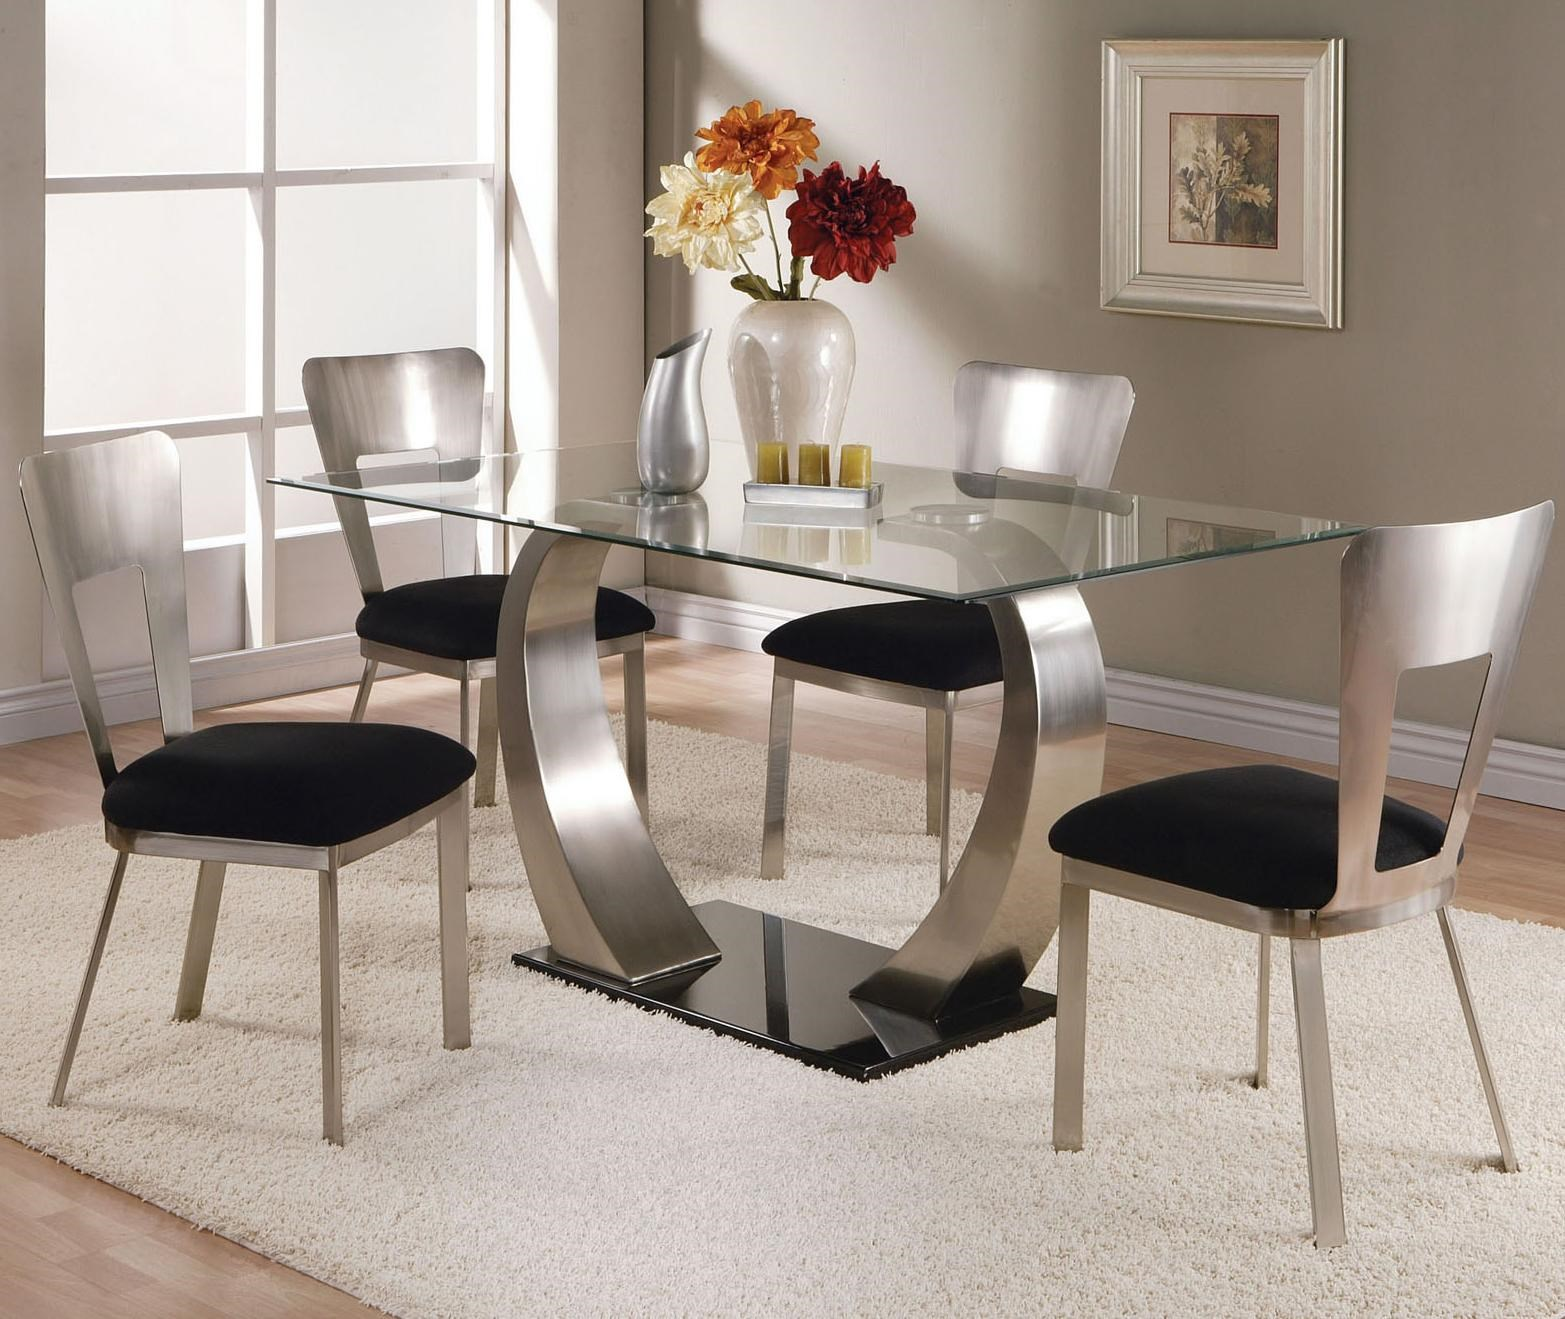 Acme Furniture Camille 5 Piece Dining Table And Side Chair Set   Household  Furniture   Dining 5 Piece Set